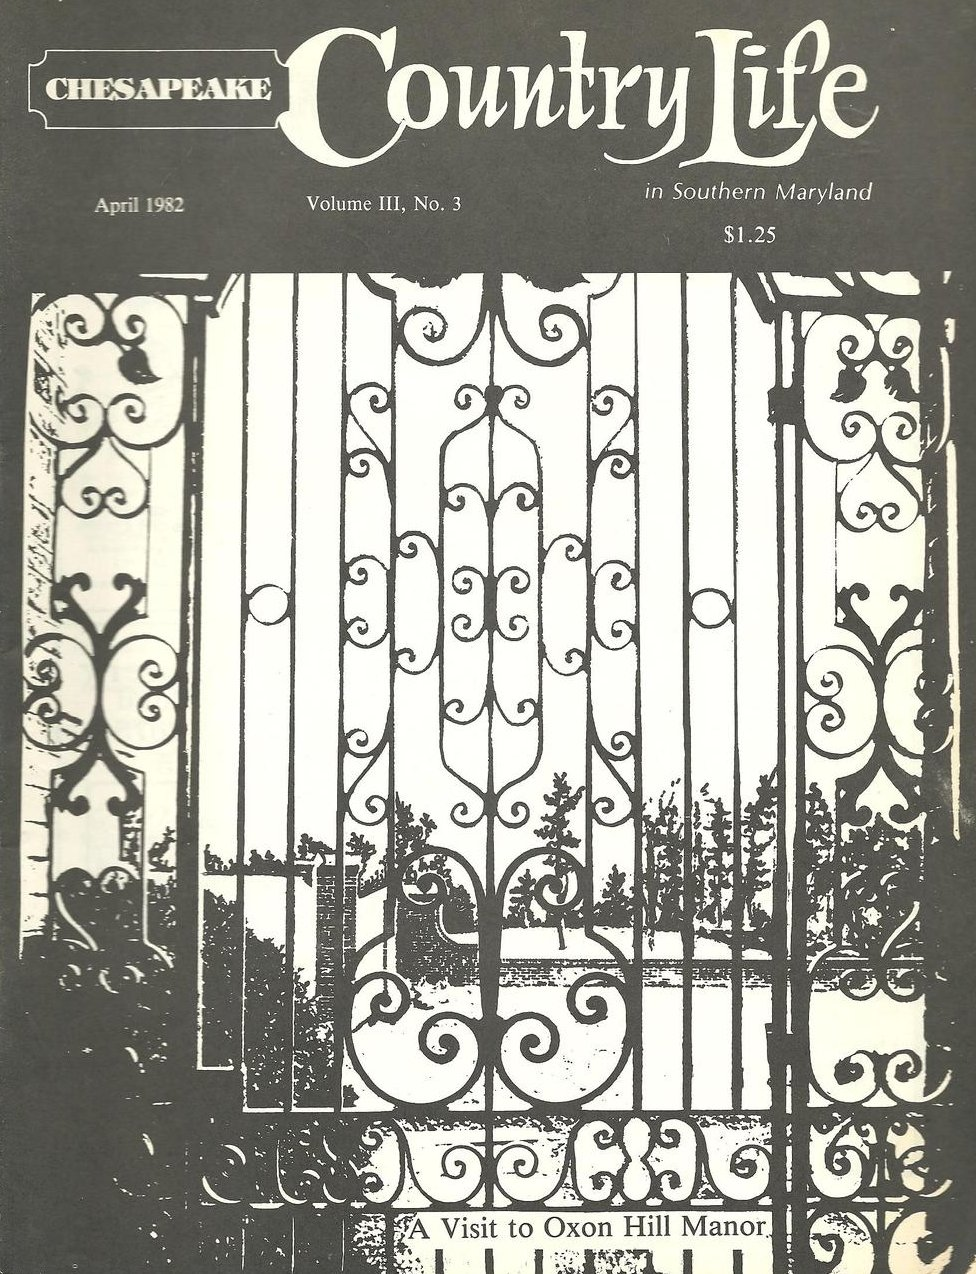 Chesapeake Country Life in Southern Maryland Vol III No 3 April 1982